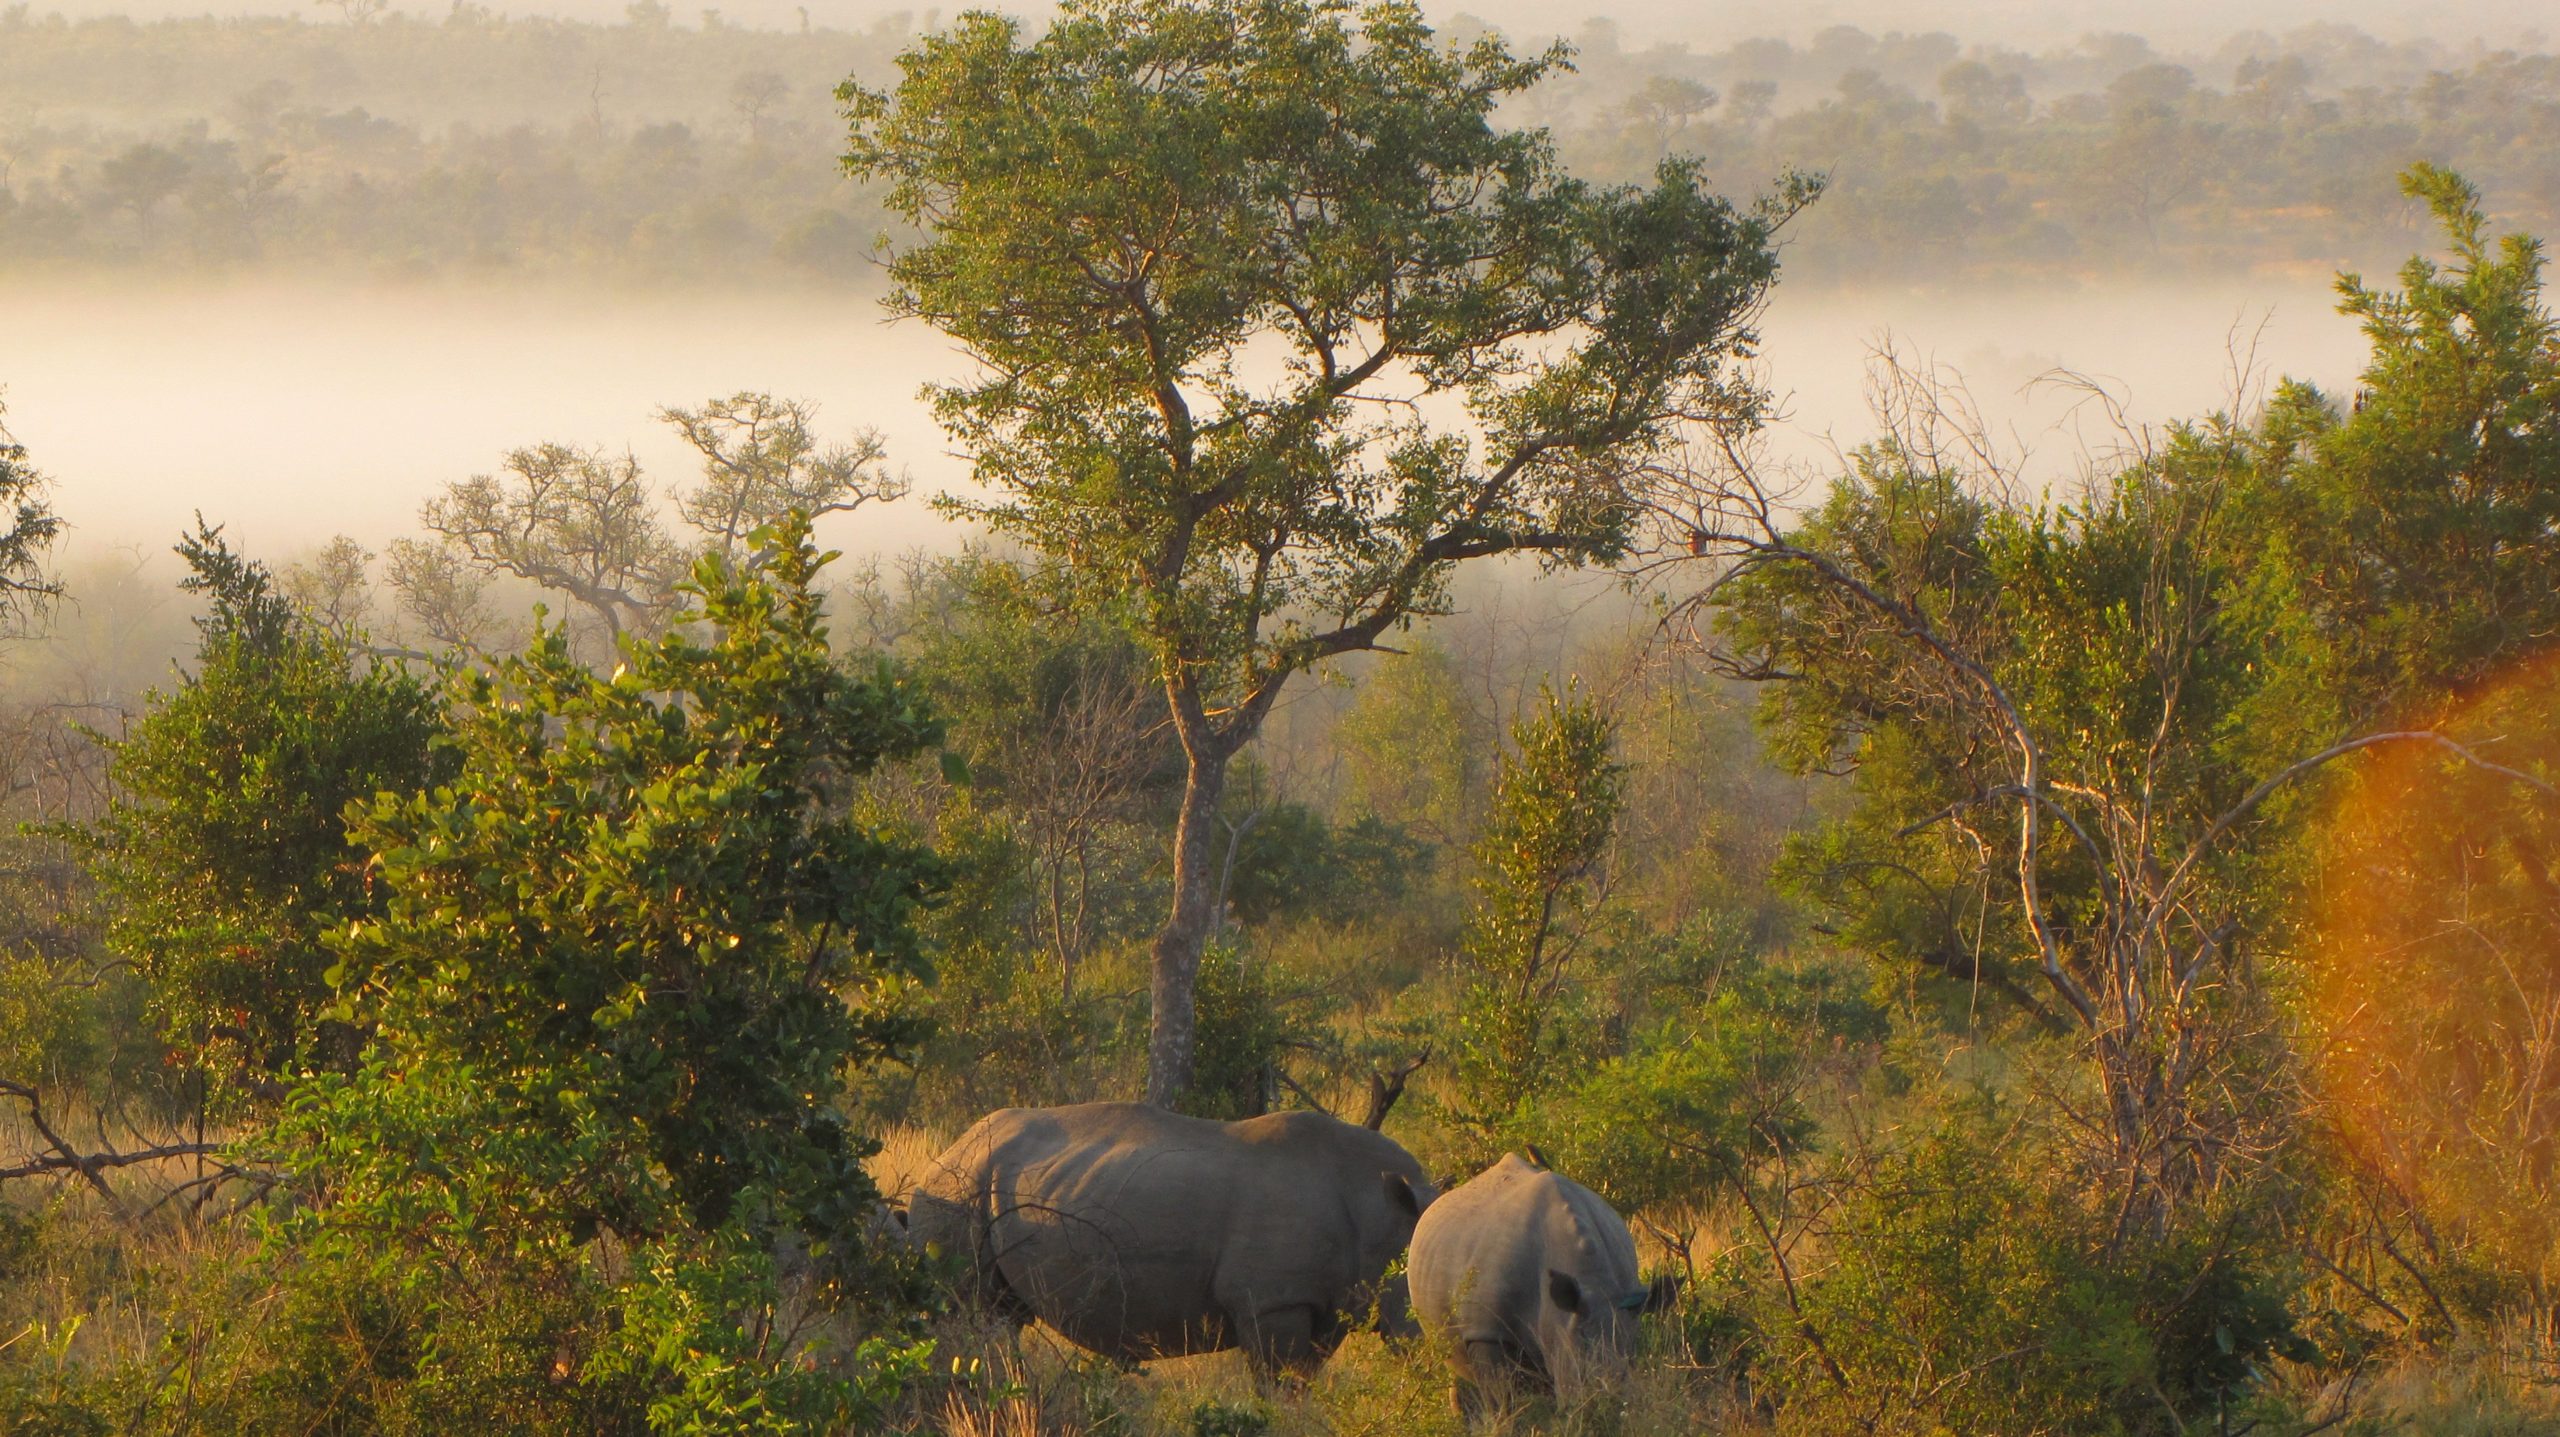 Morning view in Kruger National Park. Image Cindy Dykman